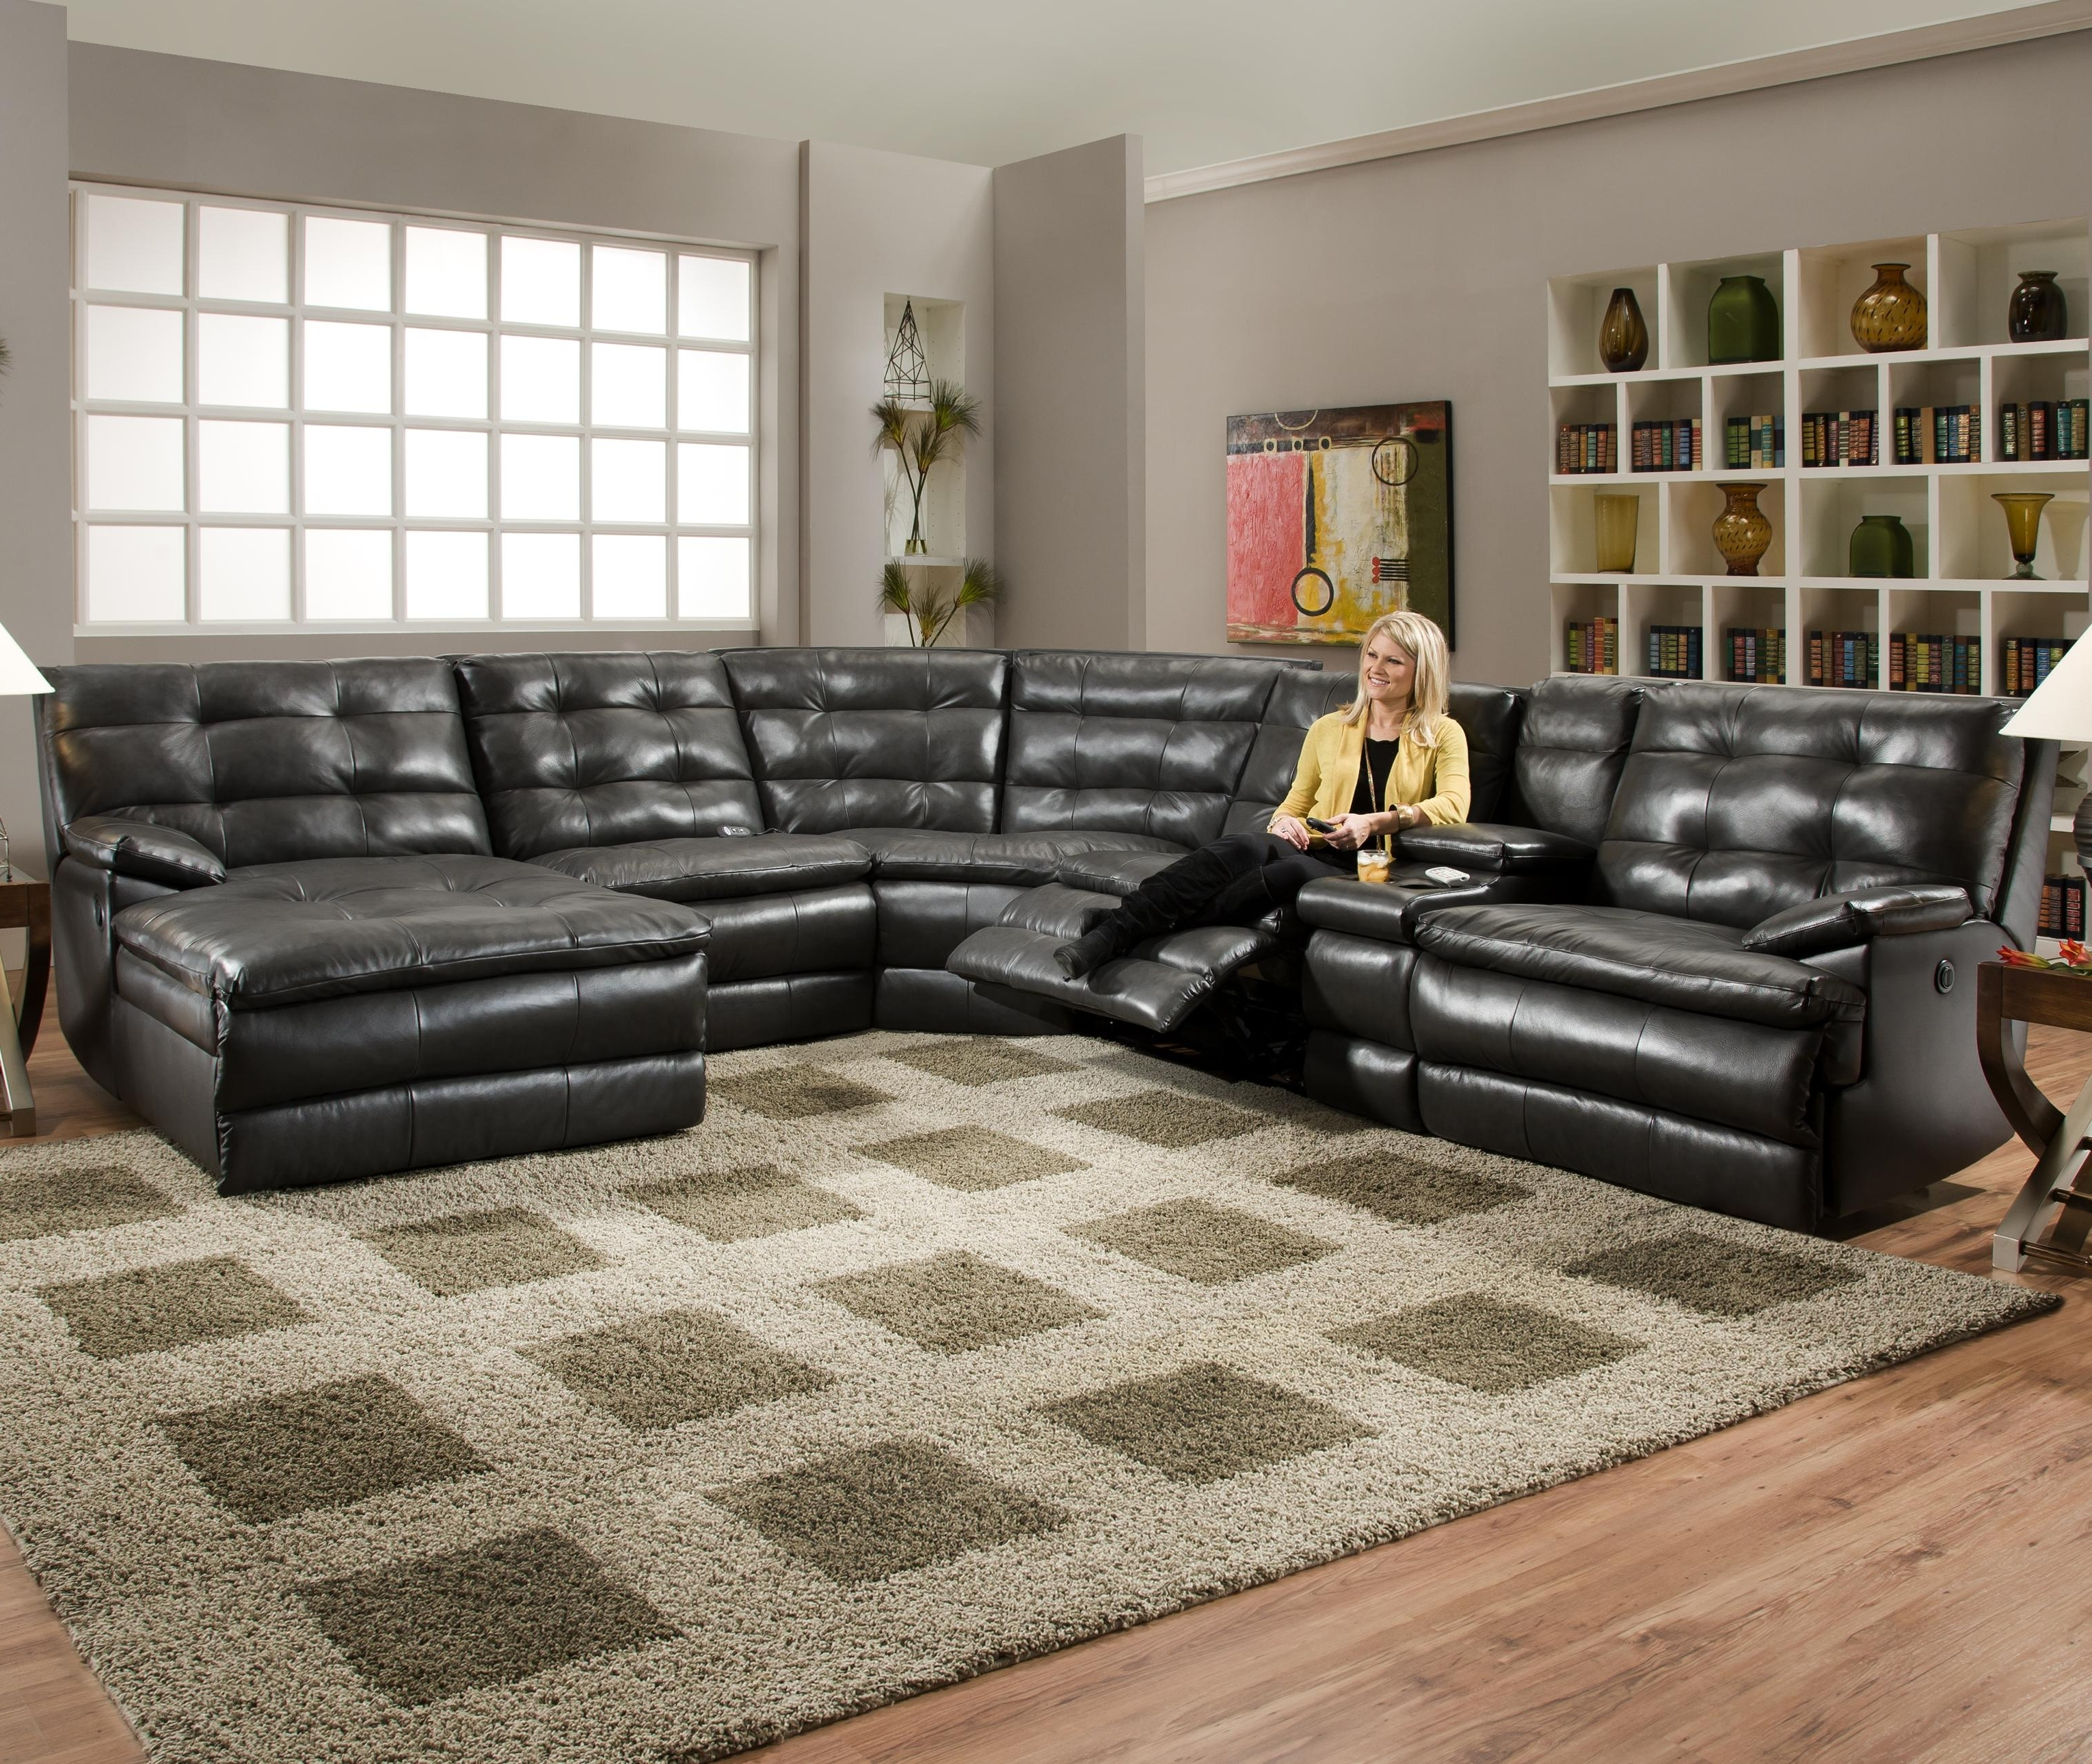 Dayton Ohio Sectional Sofas Regarding Famous Luxurious Tufted Leather Sectional Sofa In Classy Black Color With (View 5 of 15)